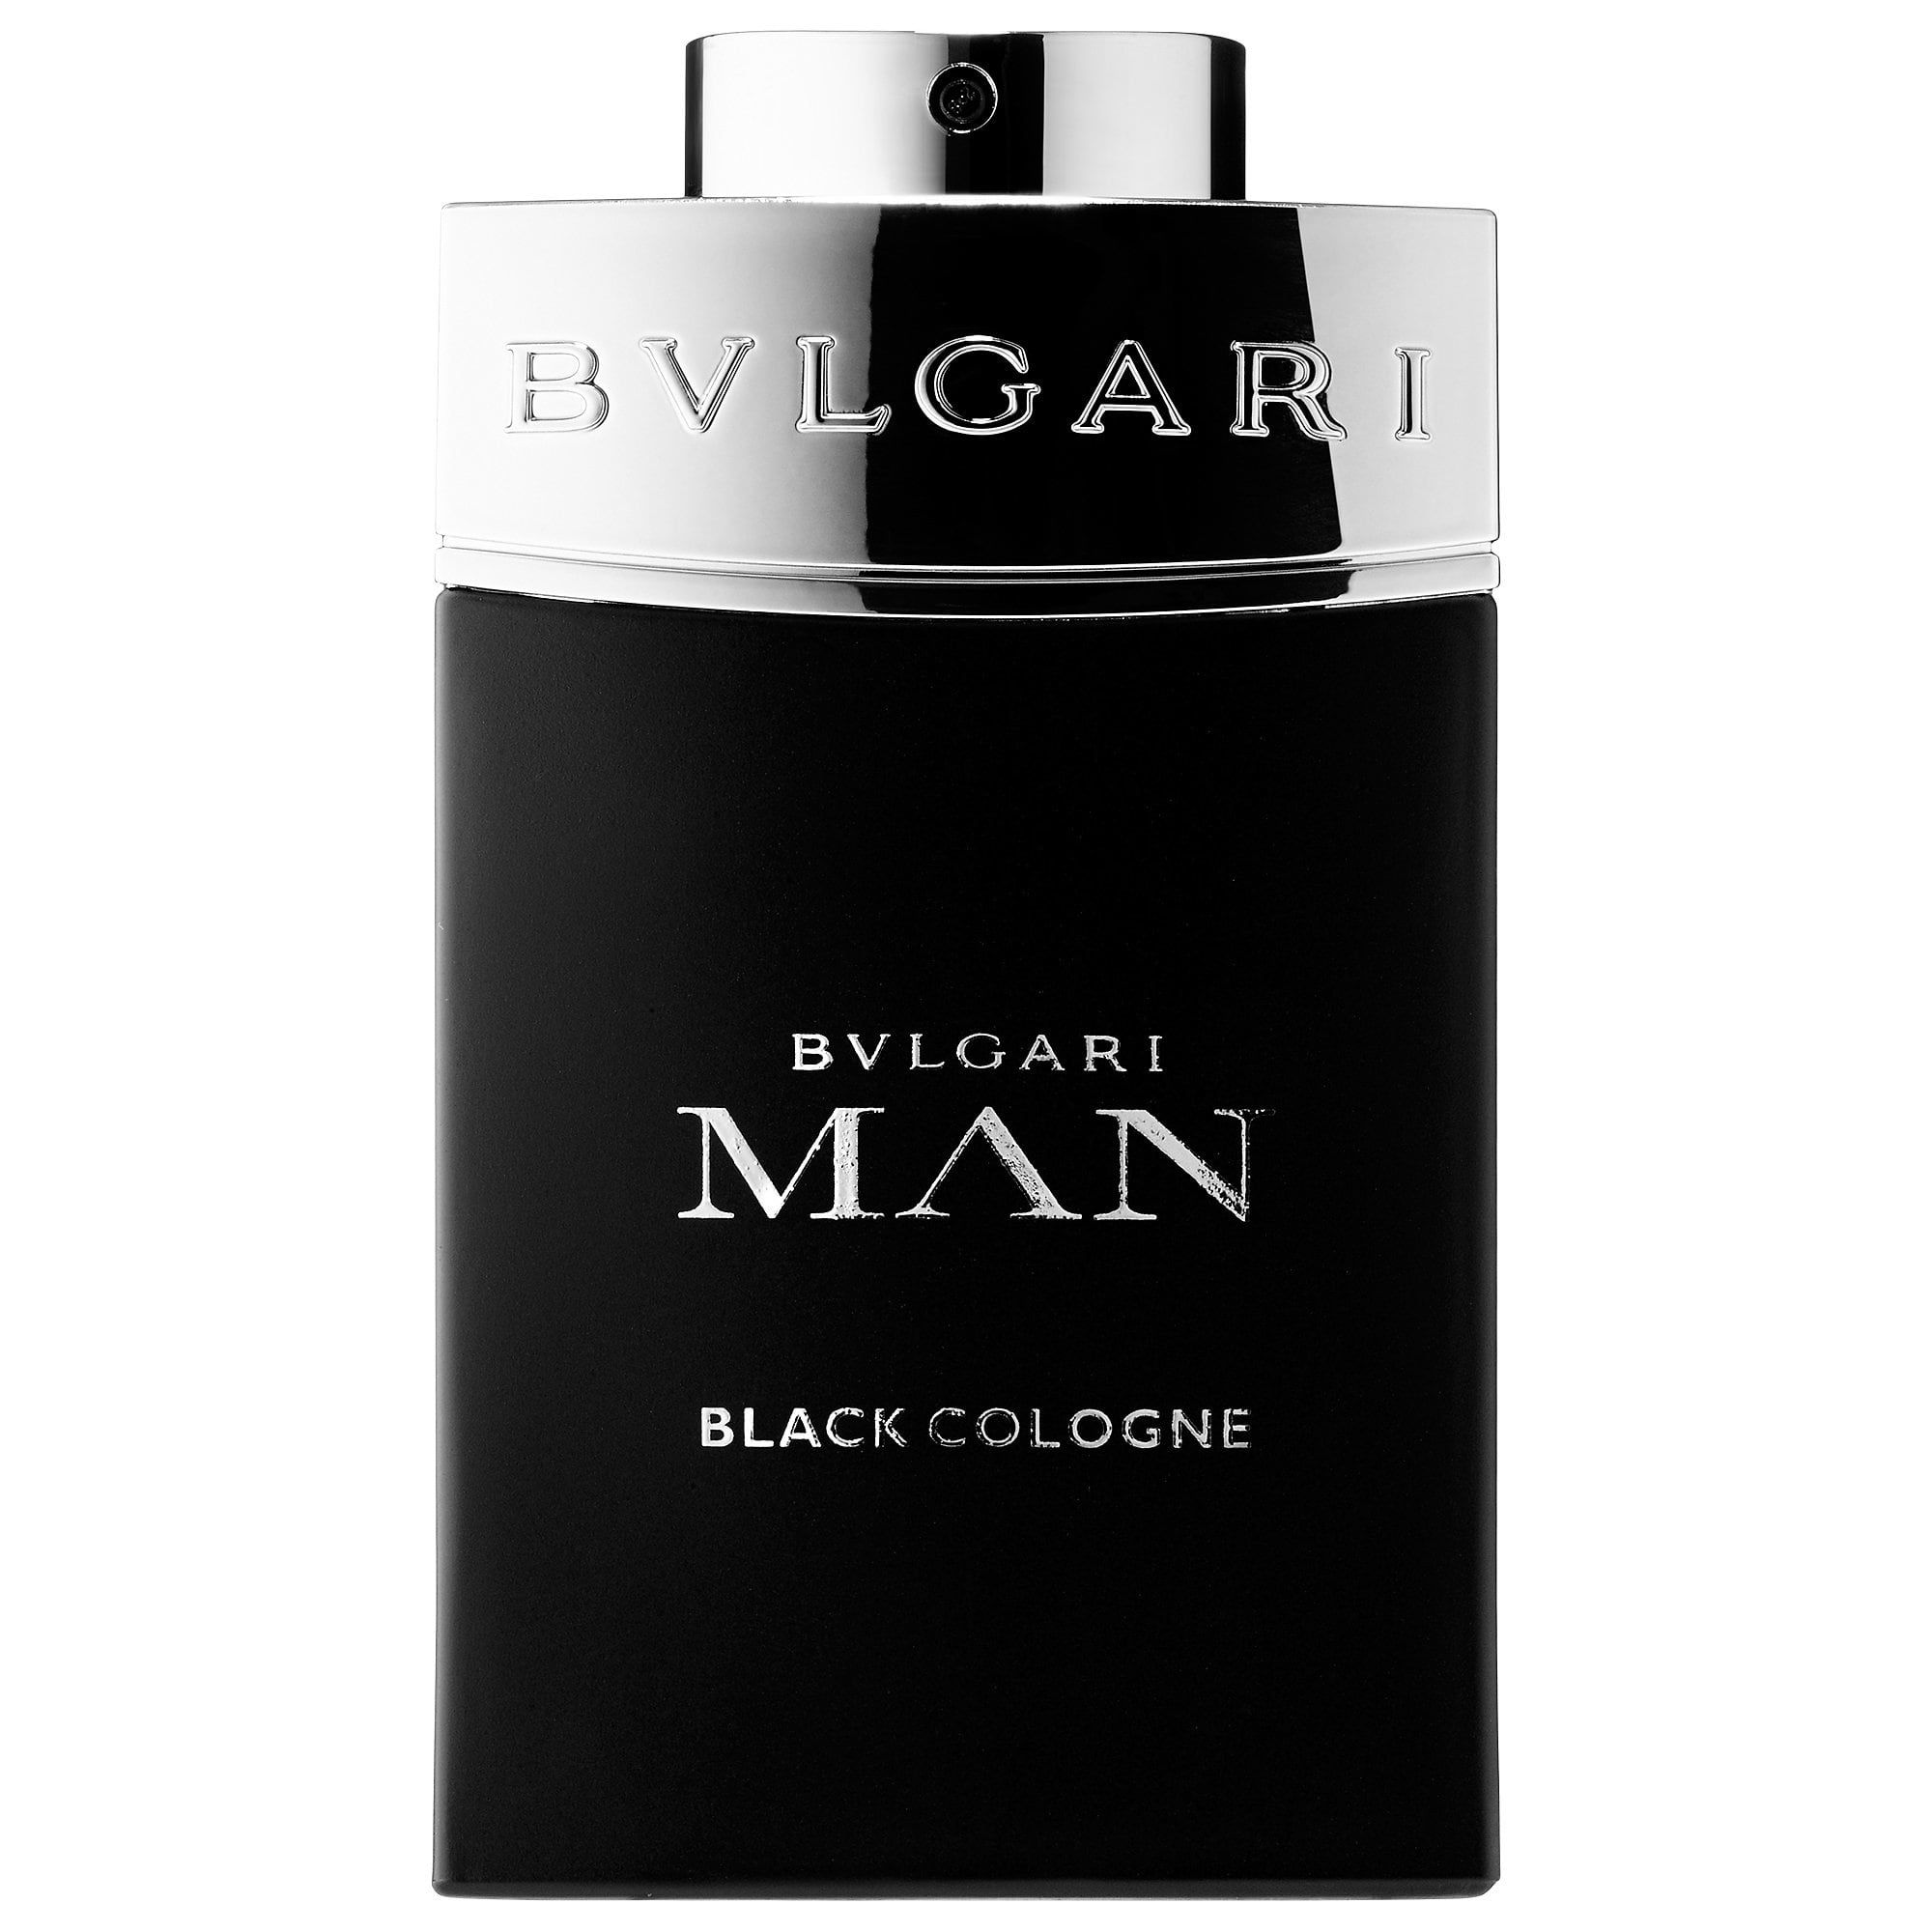 cf4f8a30aa8 BVLGARI MAN Black Cologne 3.4 oz  101 mL Eau de Toilette Spray ...